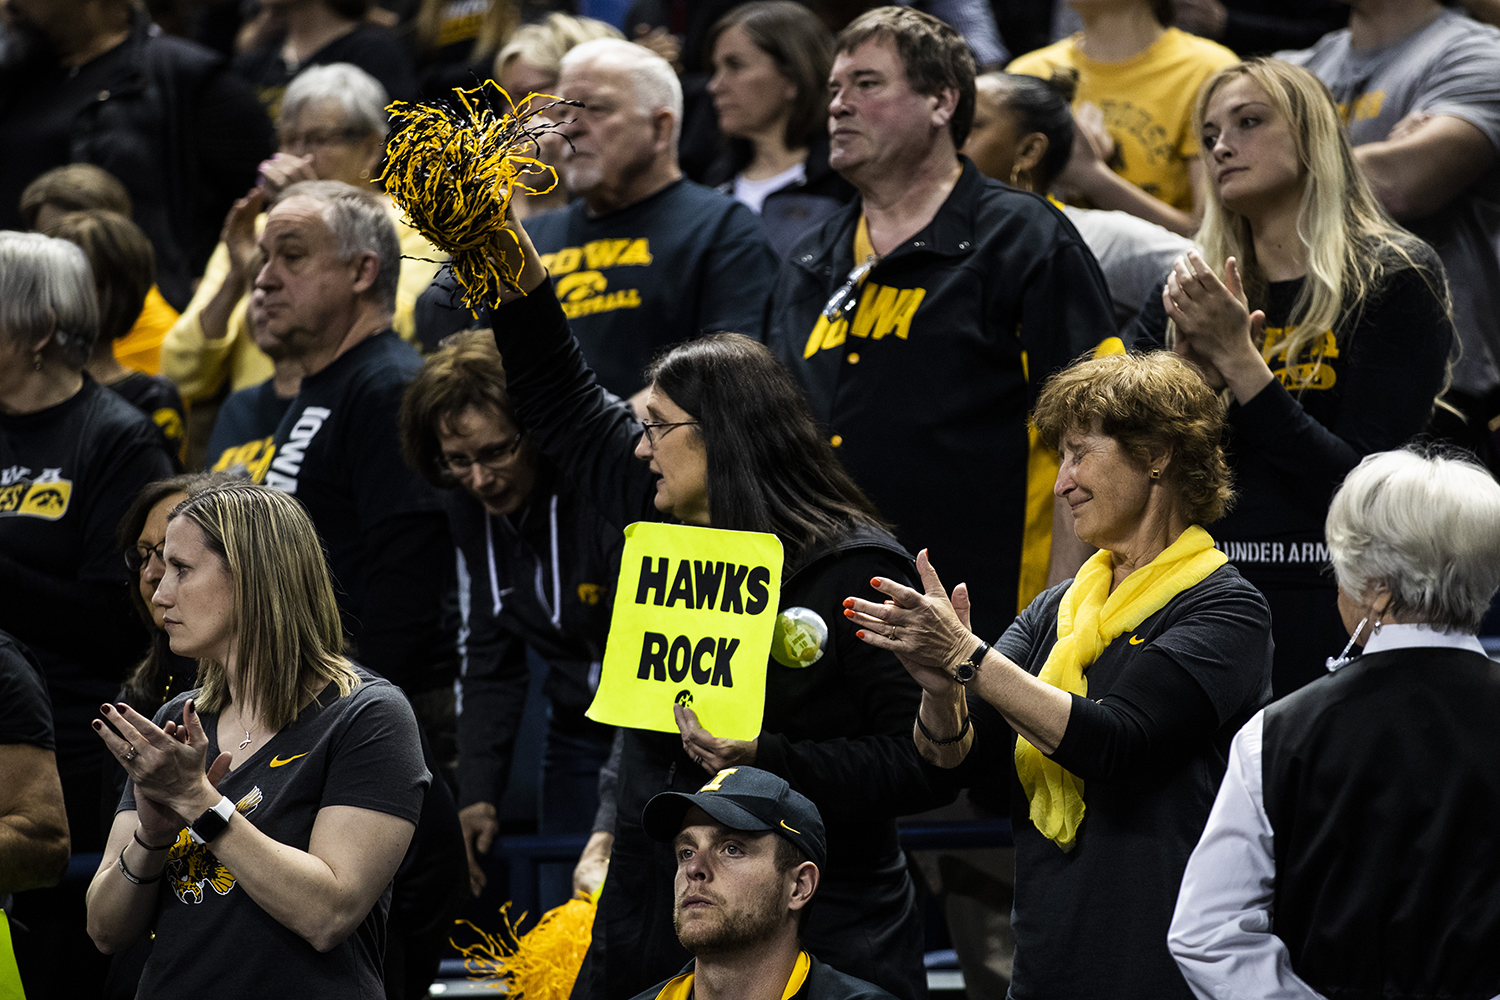 Iowa+center+Megan+Gustafson%27s+family+cheers+on+Megan+as+she+is+subbed+out+of+the+game+during+the+NCAA+Elite+8+game+against+Baylor+at+the+Greensboro+Coliseum+Complex+on+Monday%2C+April+1%2C+2019.+The+Bears+defeated+the+Hawkeyes+85-53.